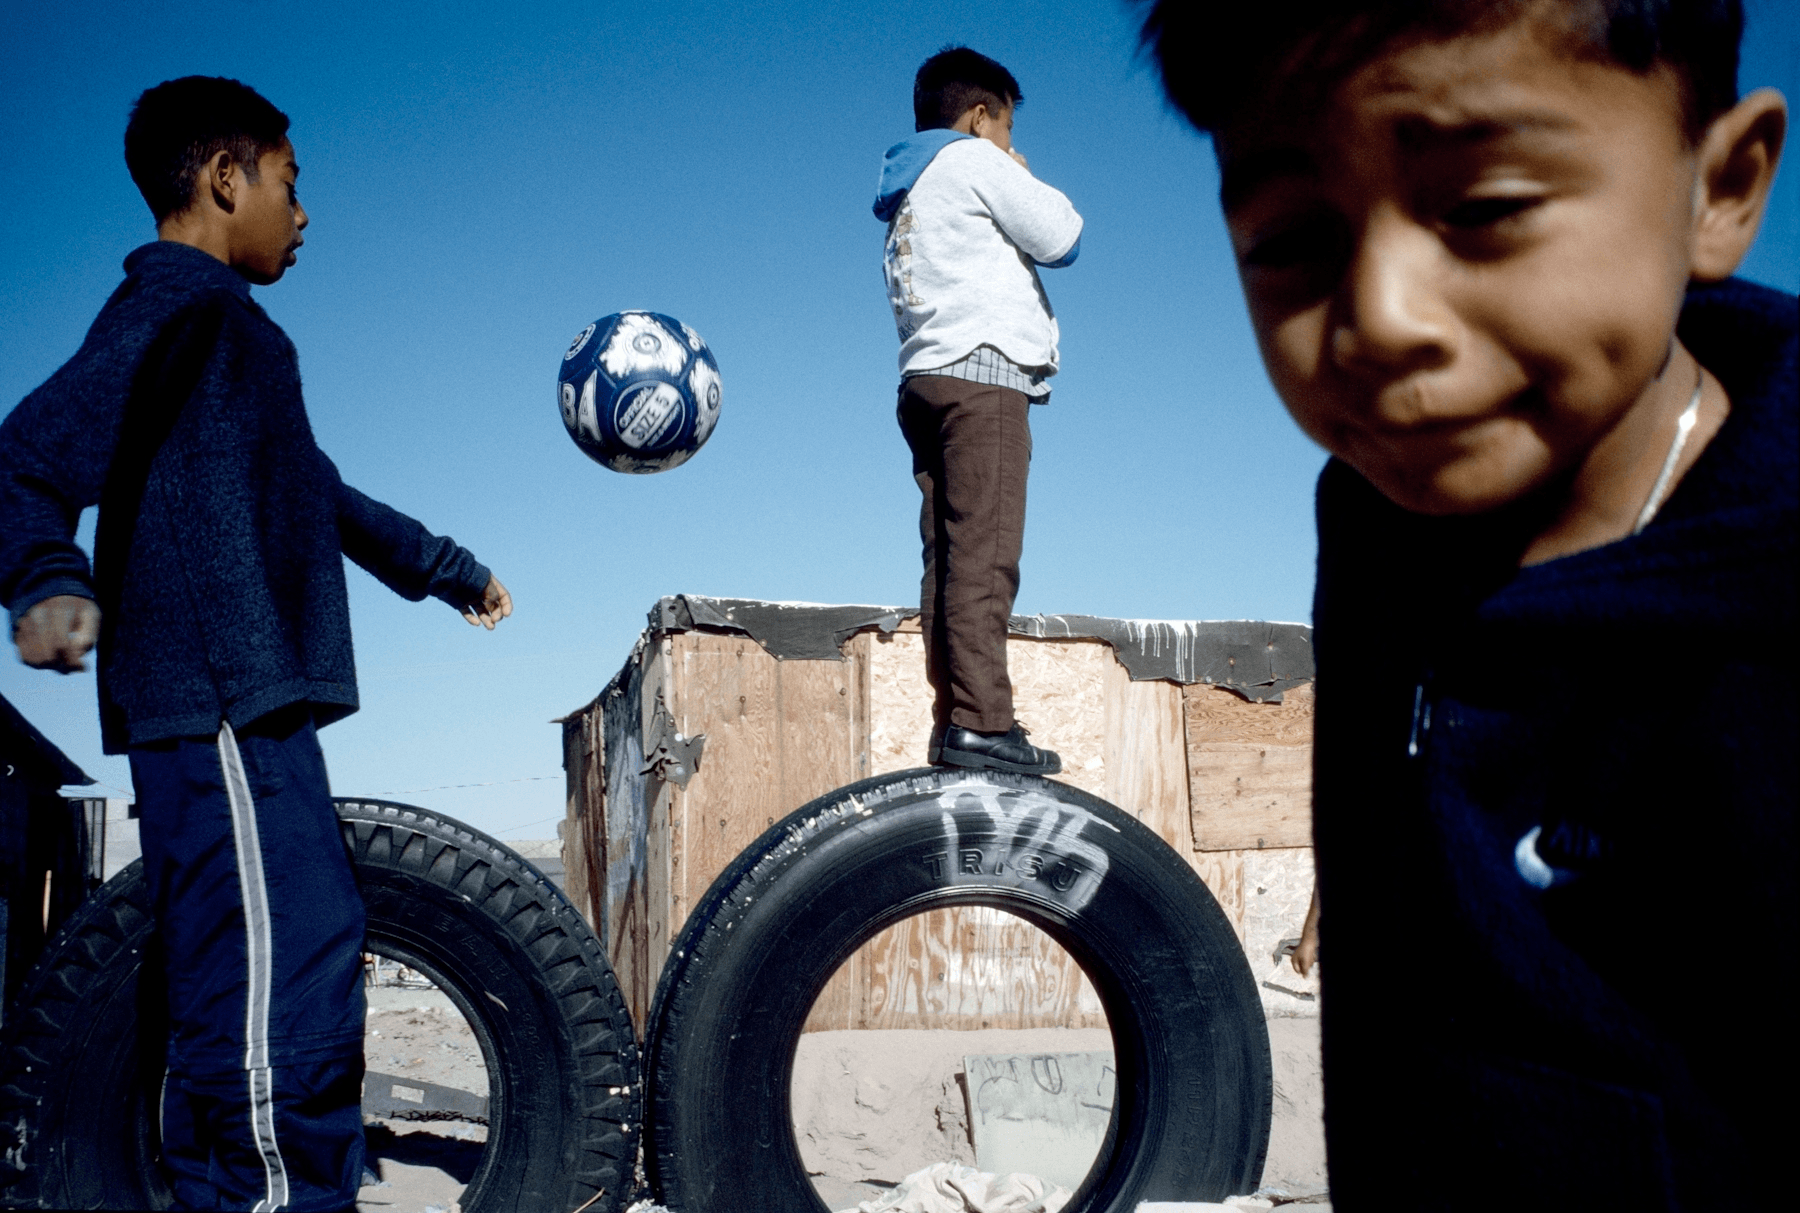 MEXICO. Juarez, Chihuahua. 2003. The large colonia of Anapra on the outskirts of Juarez that is only recently beginning to be provided with some running water.